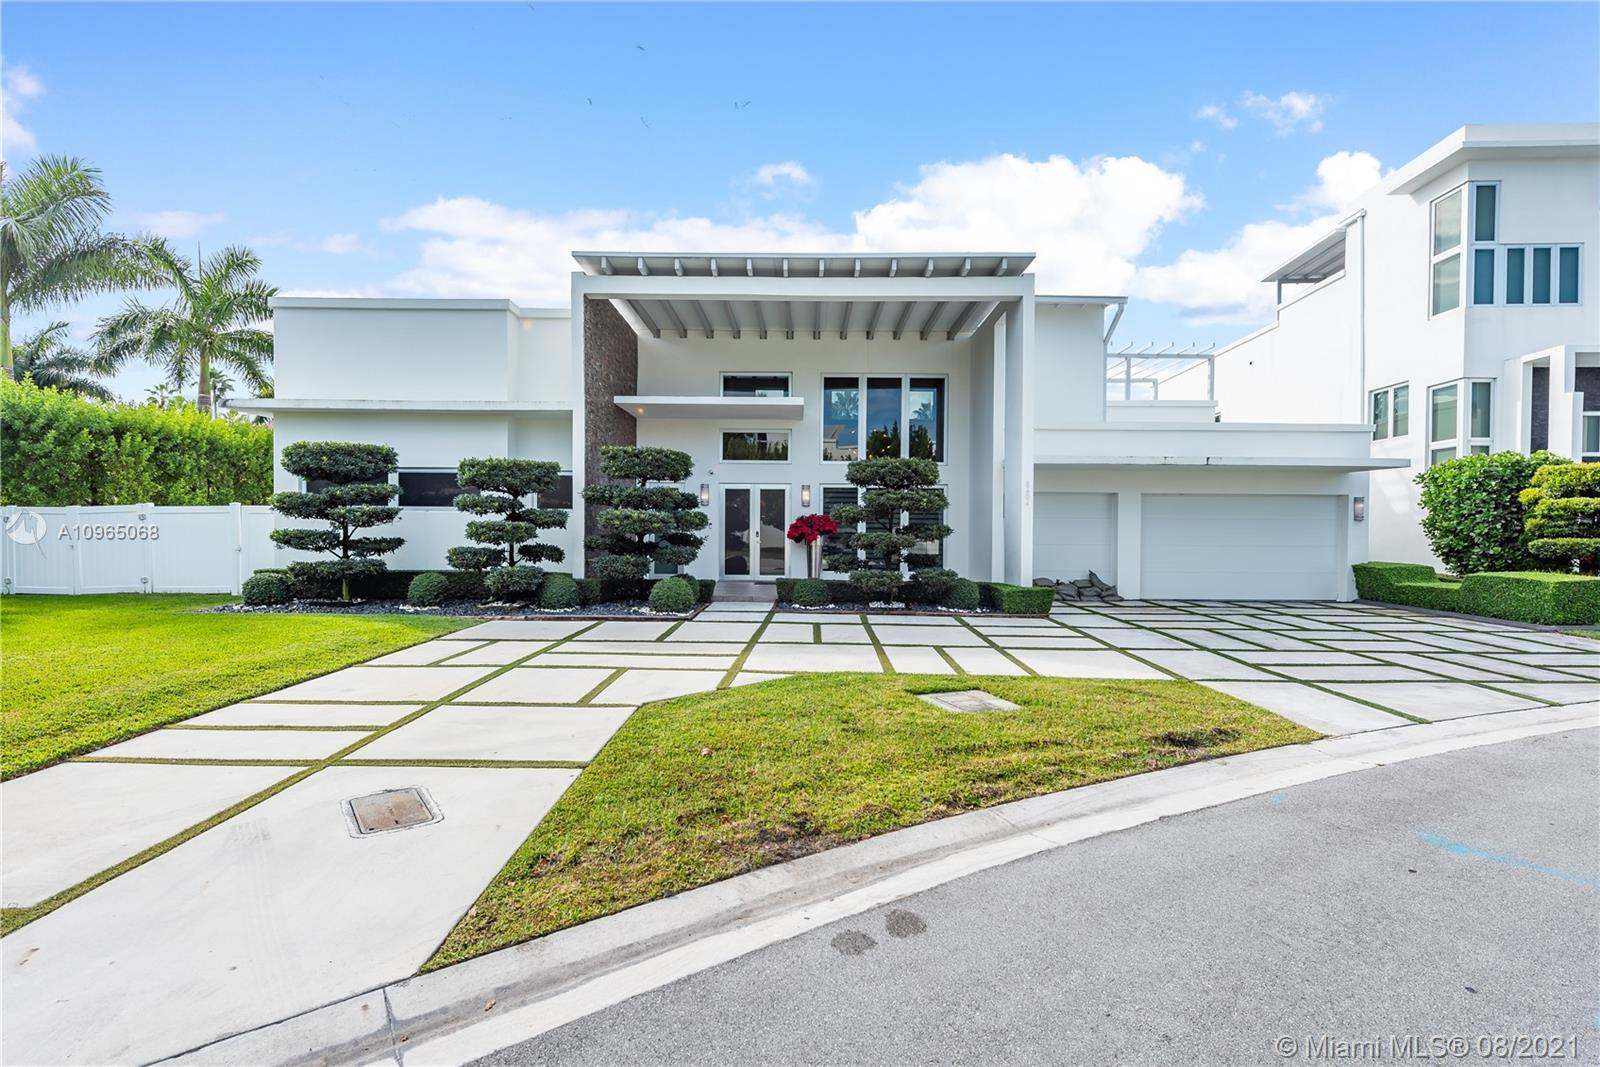 Spectacular home in the best area of Doral, the Oasis Park Square community,  living area 3,838 square feet for a total lot 13086 SF, built in 2015, this MODERN house has 6 bedrooms and 6 Full bath,  gourmet chef's kitchen. Stainless steel appliances (JennAir), high windows impact, electric shutters (hunter-douglas),  Jacuzzi, BBQ, Pool, Close access to expressway, a few miles away from Donwton Doral where there is shopping, entertaiment, and great restaurants. Excelent A+ school very close, and grocery stores. Family friendly area.